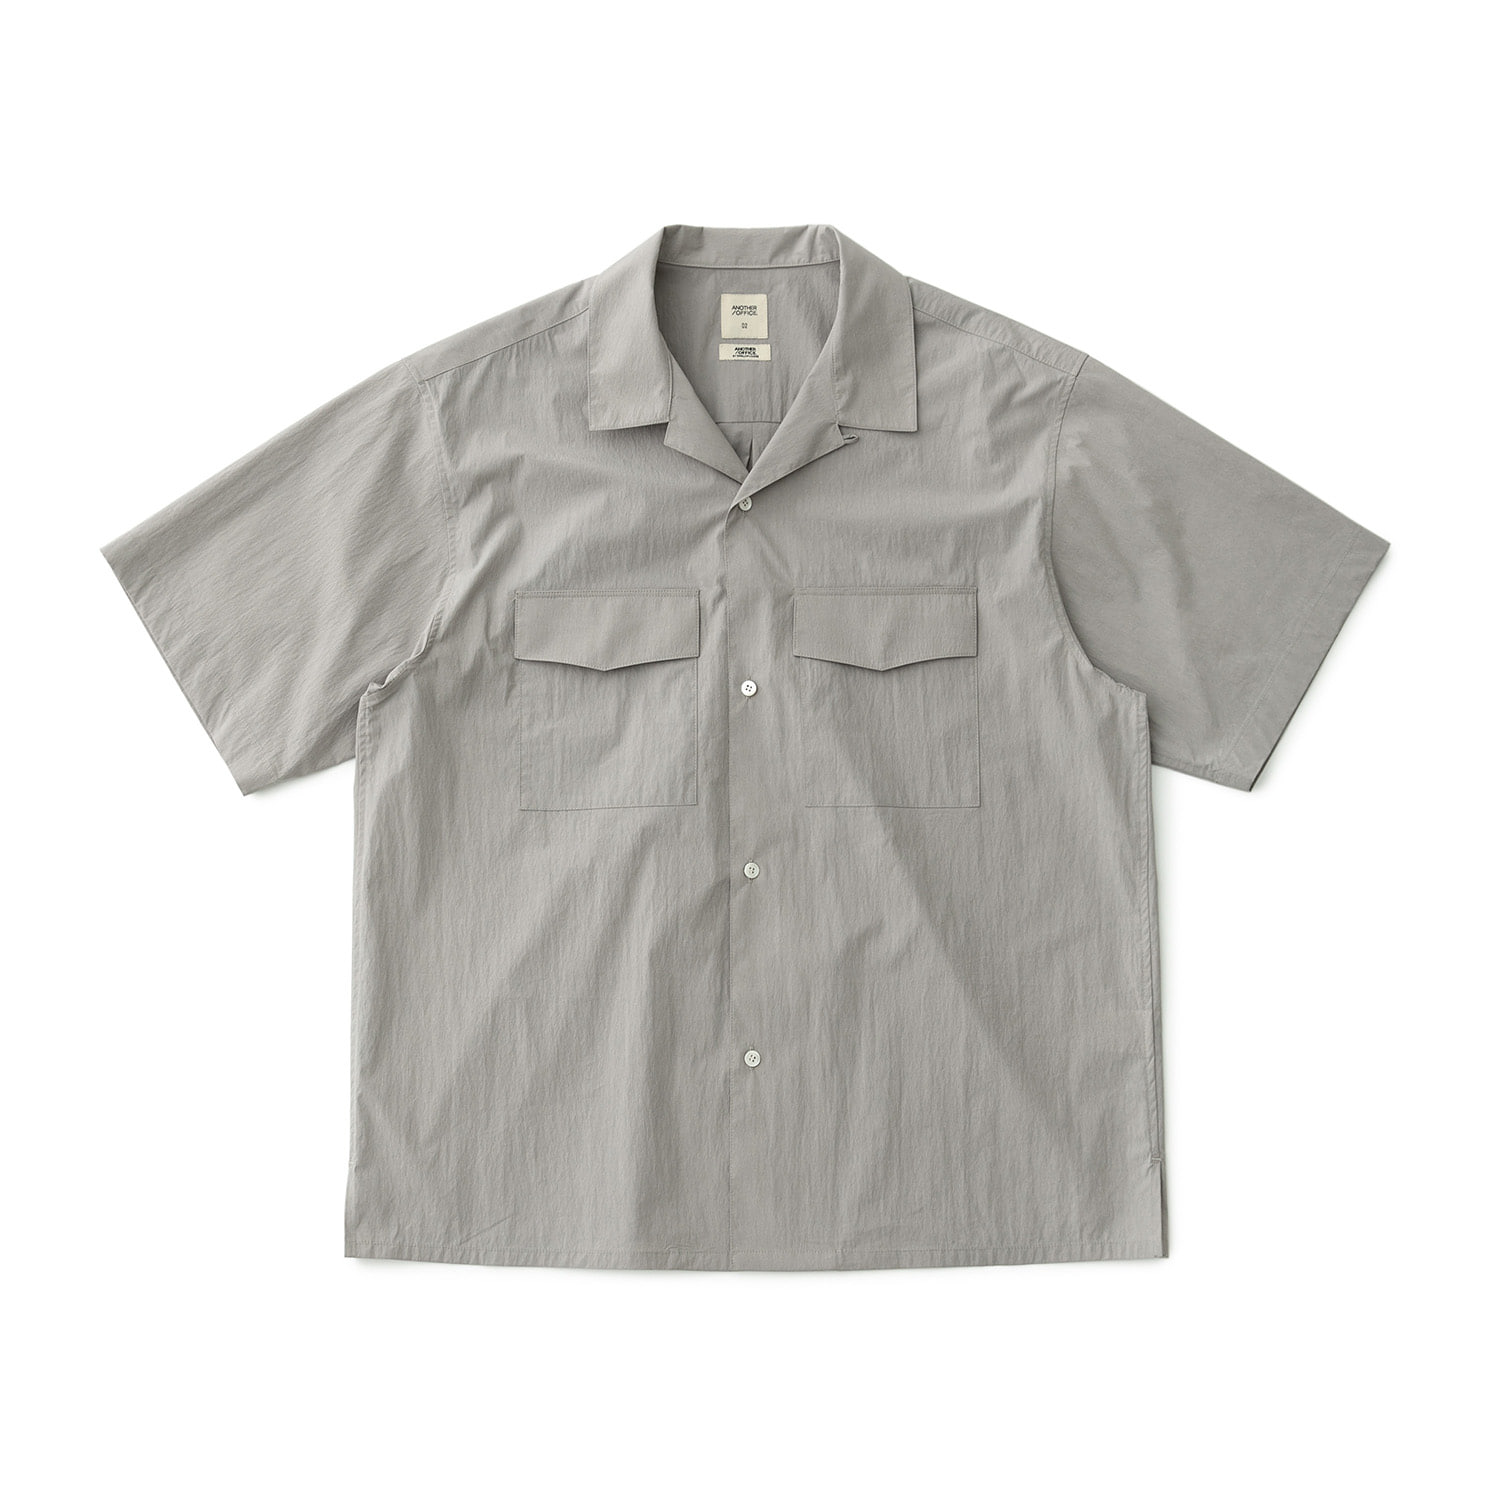 Voyager Open Collar Shirt (Misty Gray)